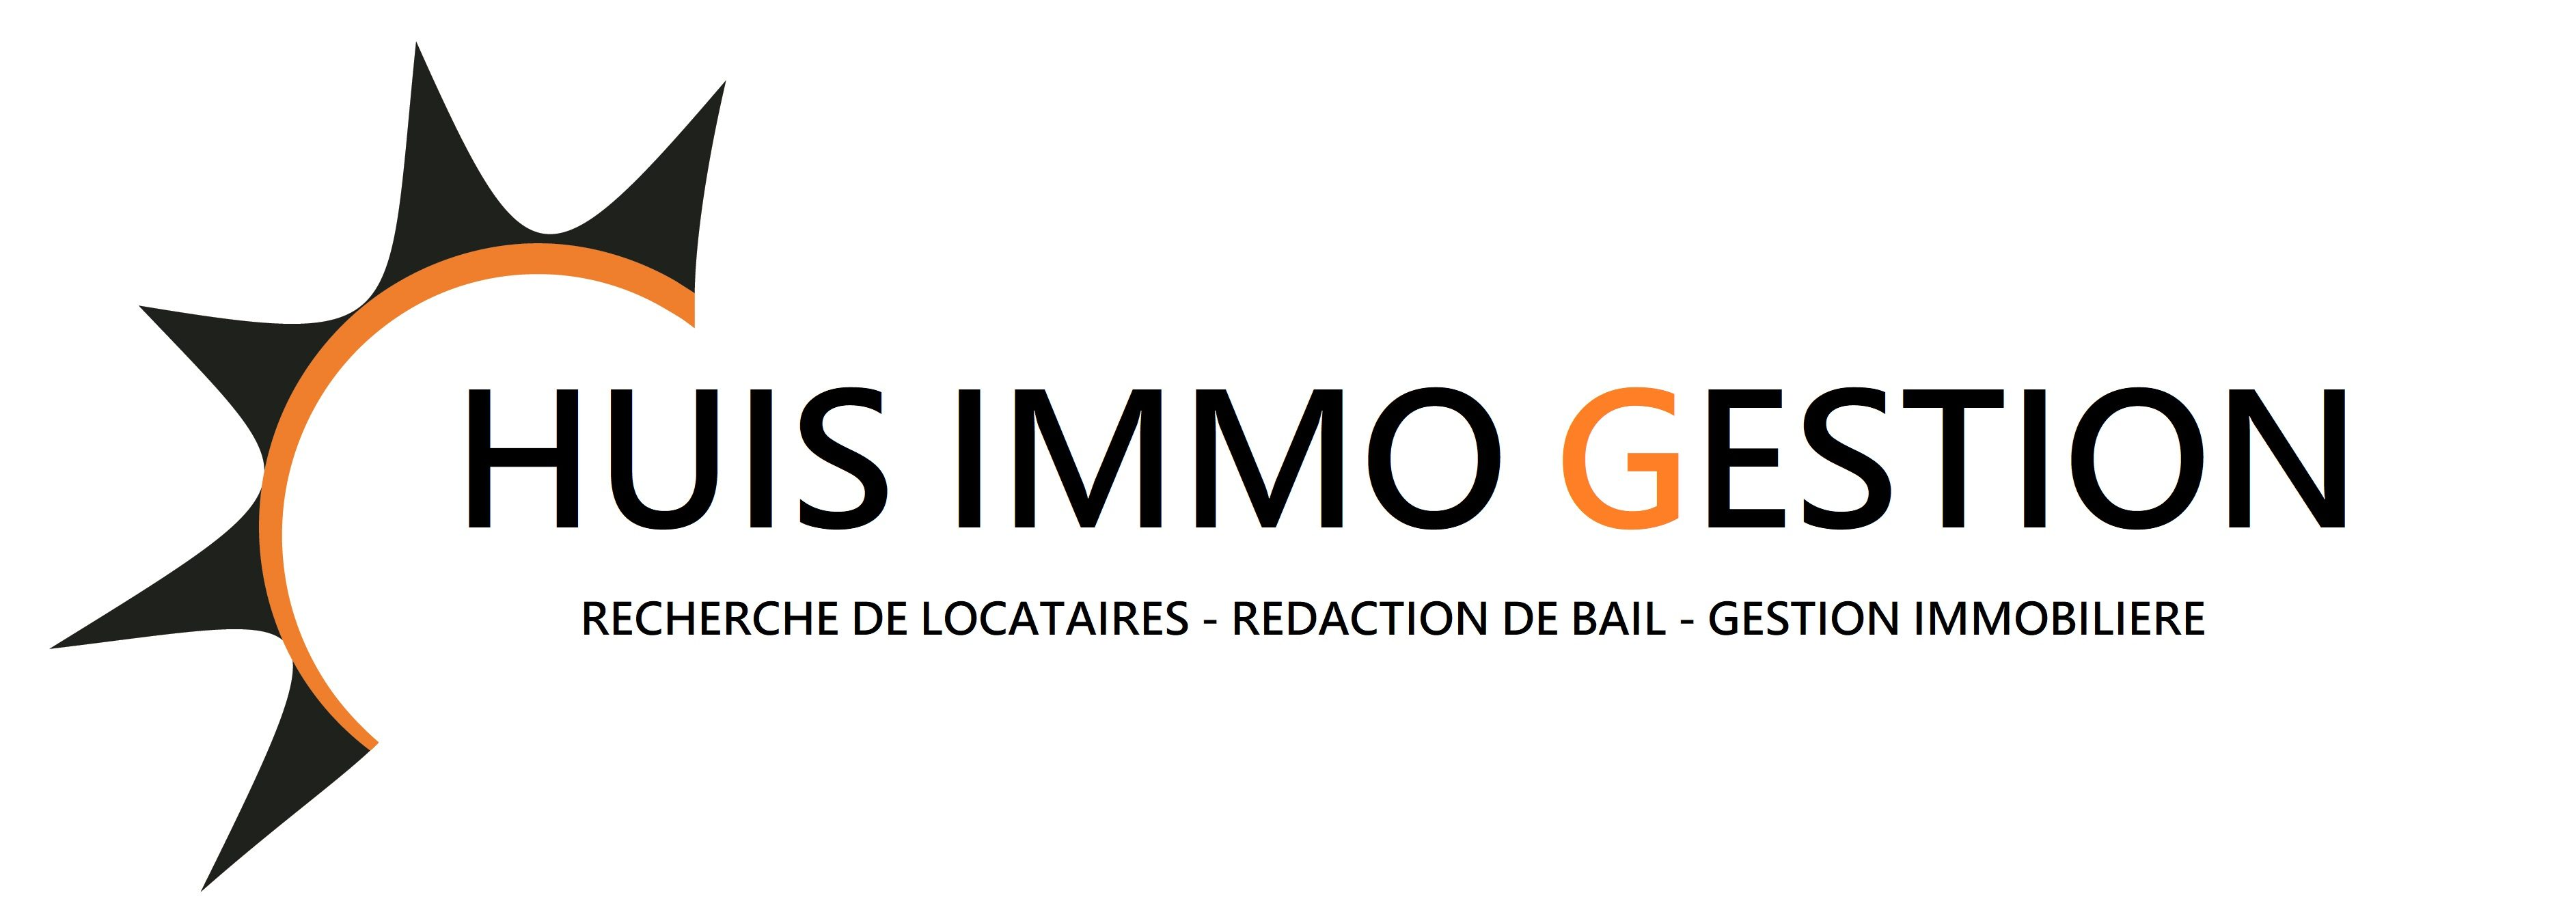 Huis Immo Gestion